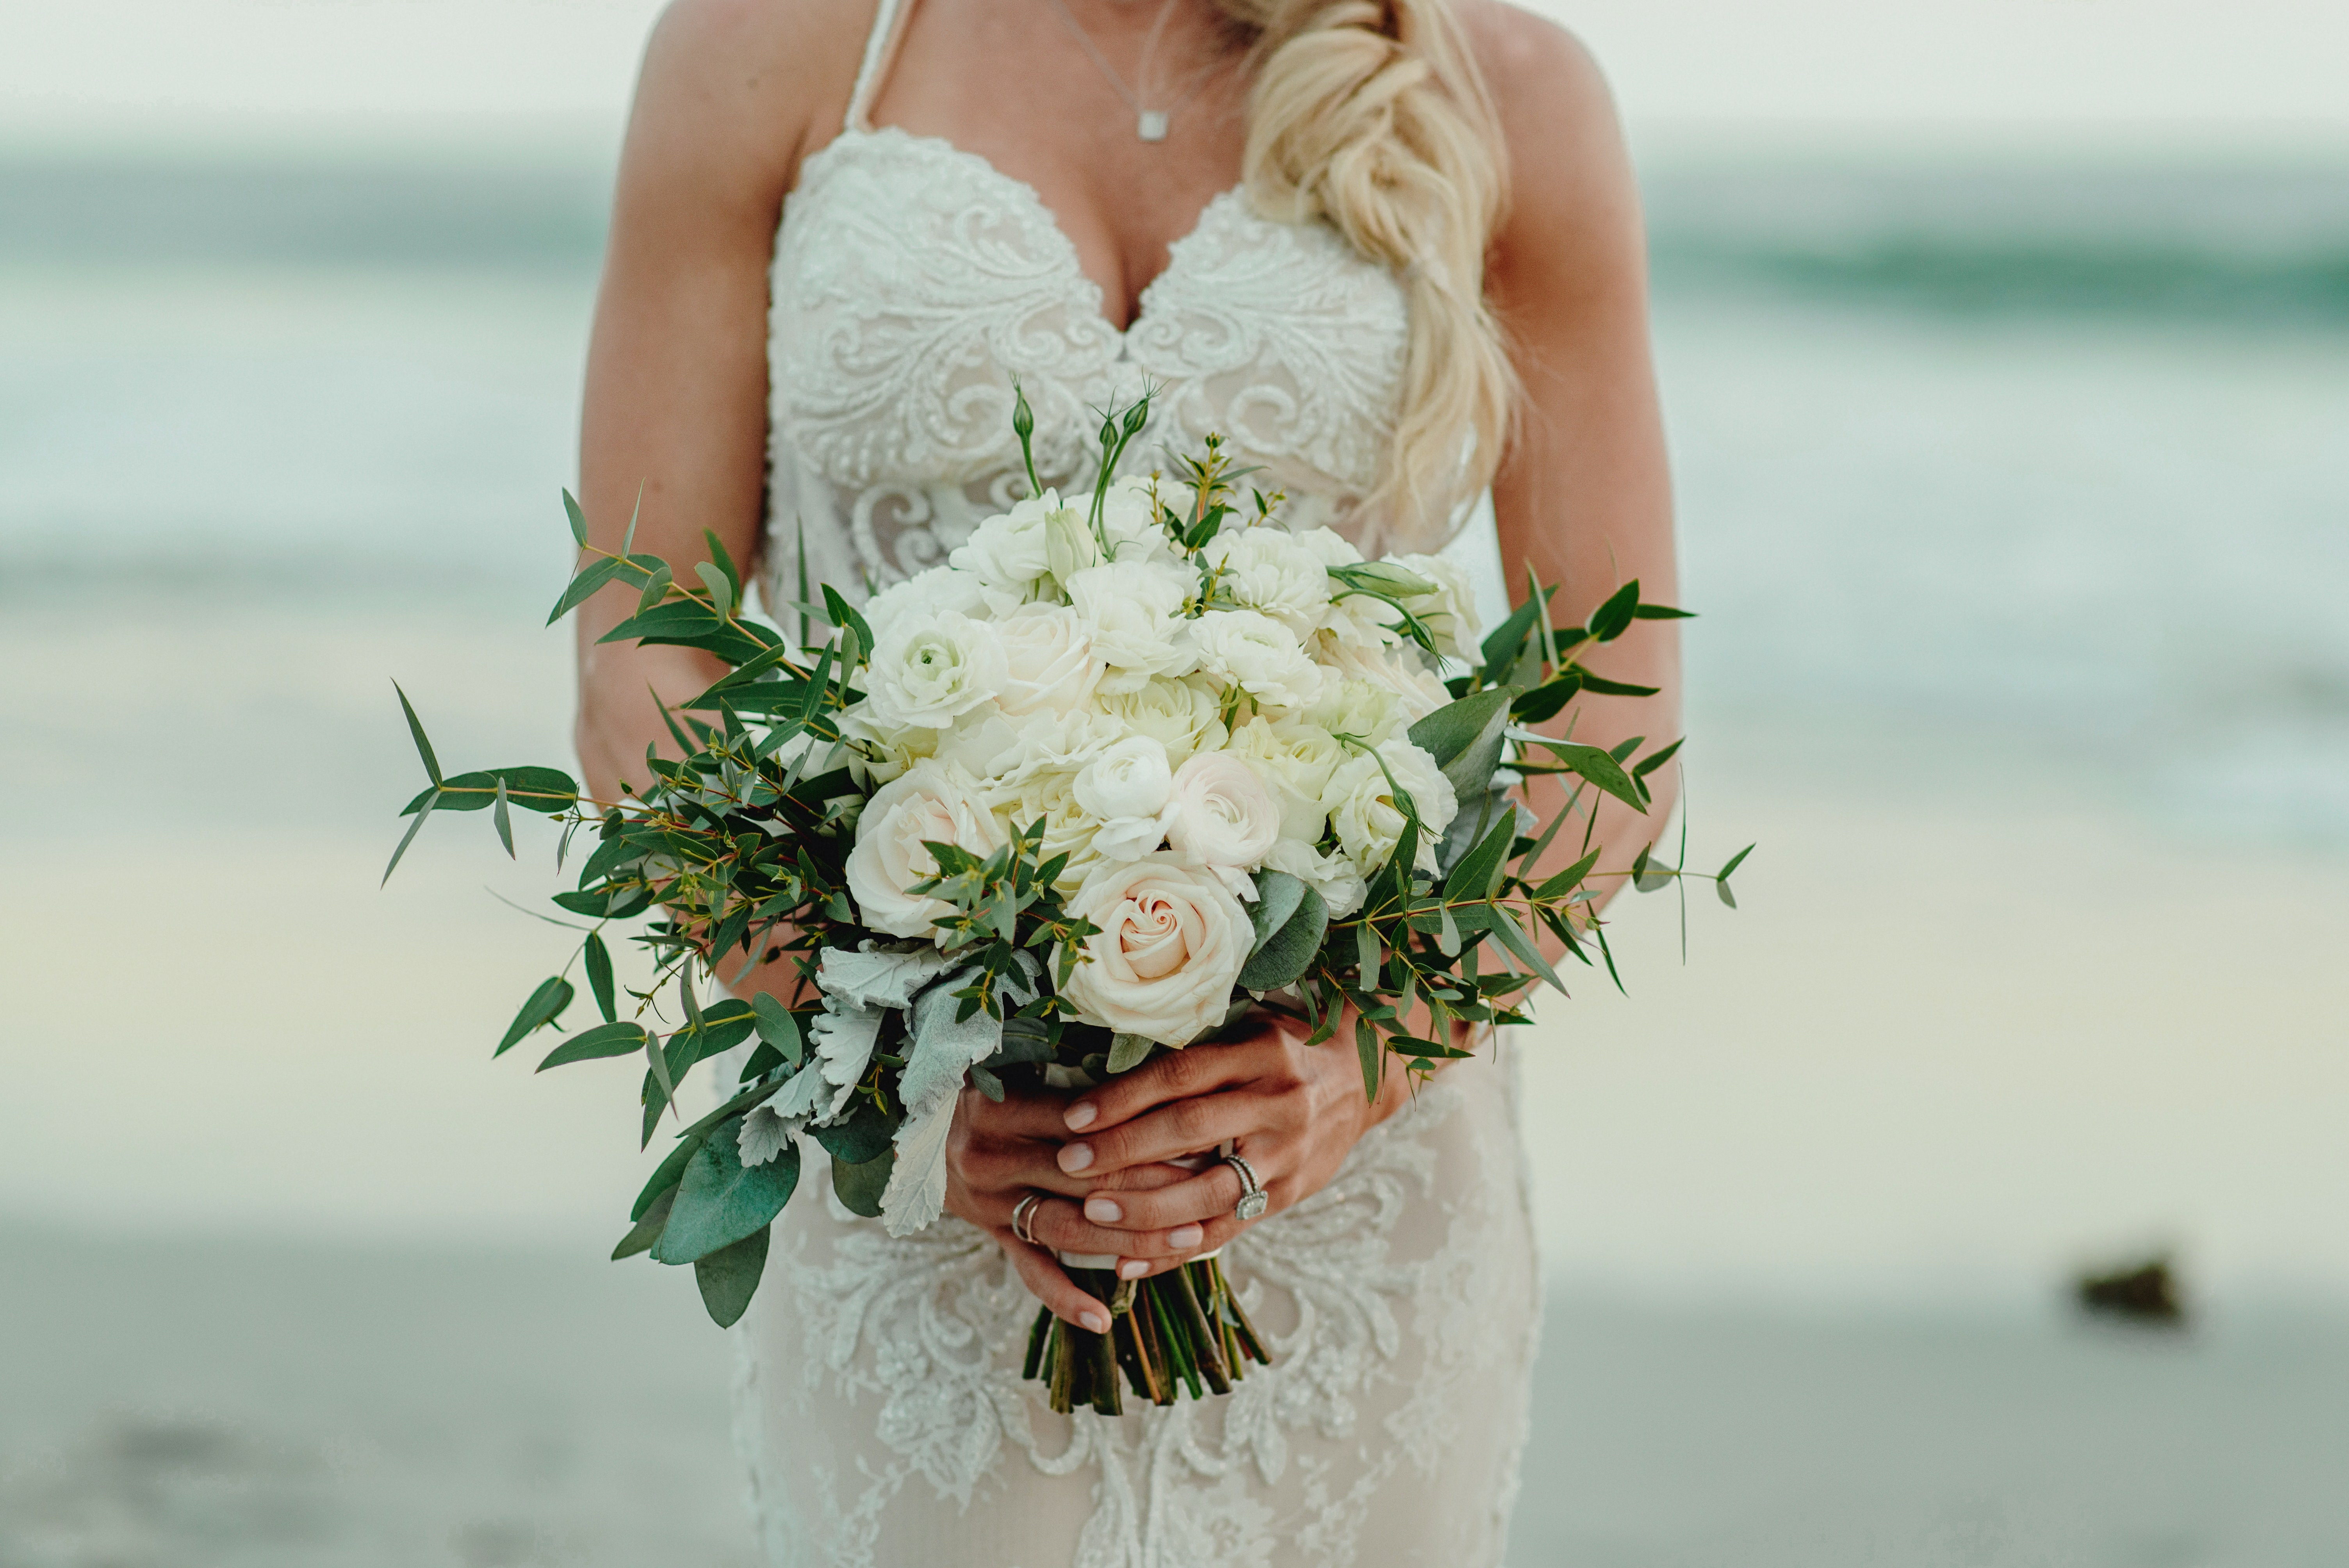 Courtney and Luis's Destination Dream At W Punta De Mita, Mexico, Photography by Fer Juaristi photography, Wedding Dress by Naama & Anat Haute Couture for Destination Wedding Blog Adriana Weddings